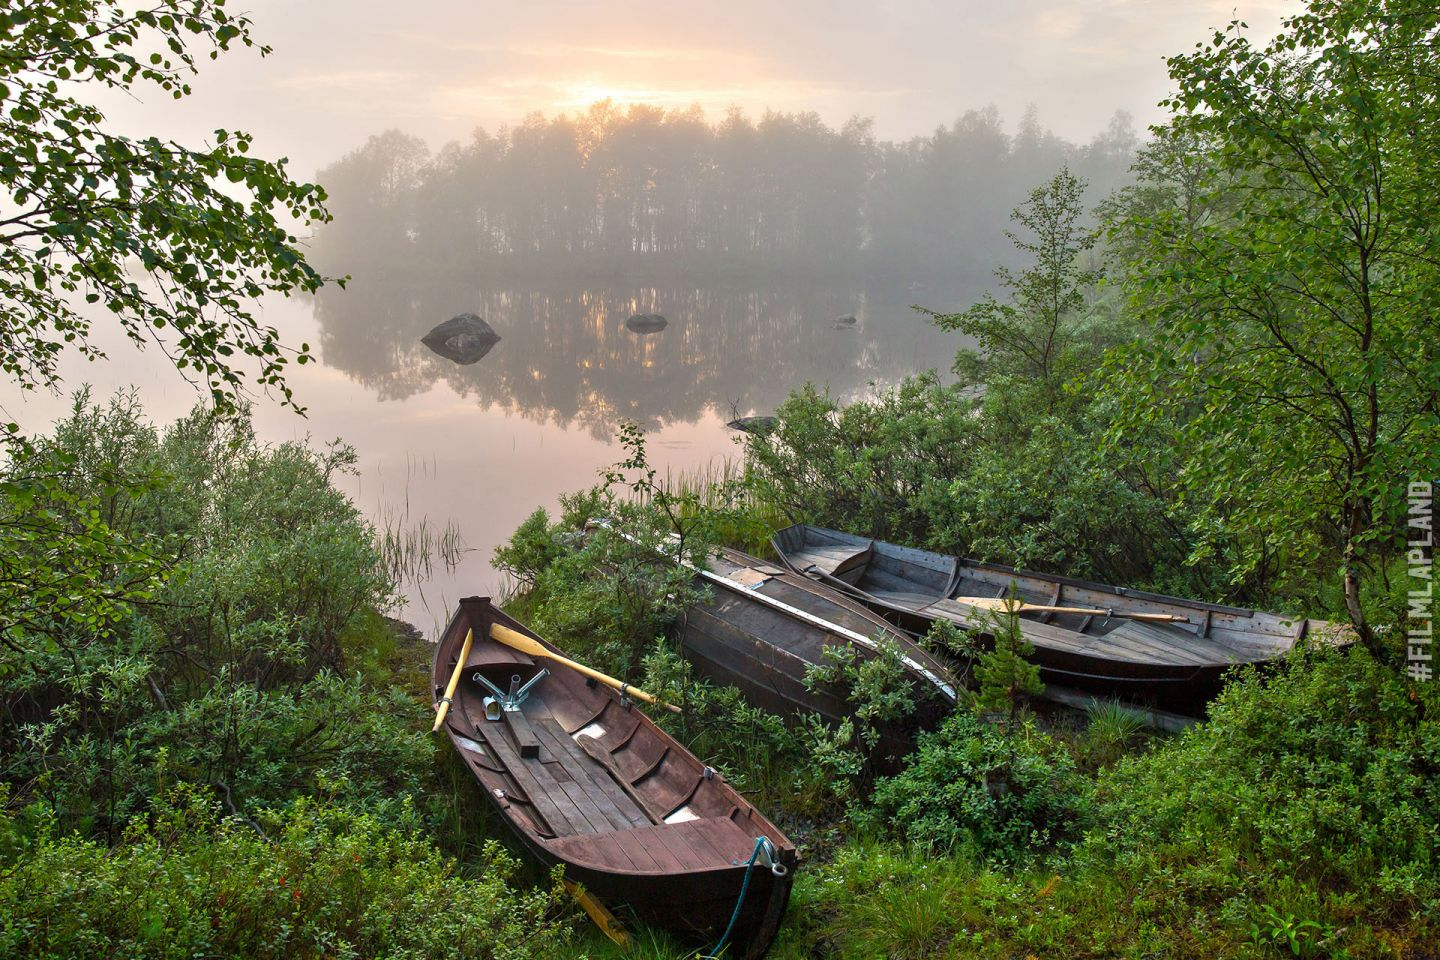 A pair of empty rowboats and the summer sun low behind distant trees